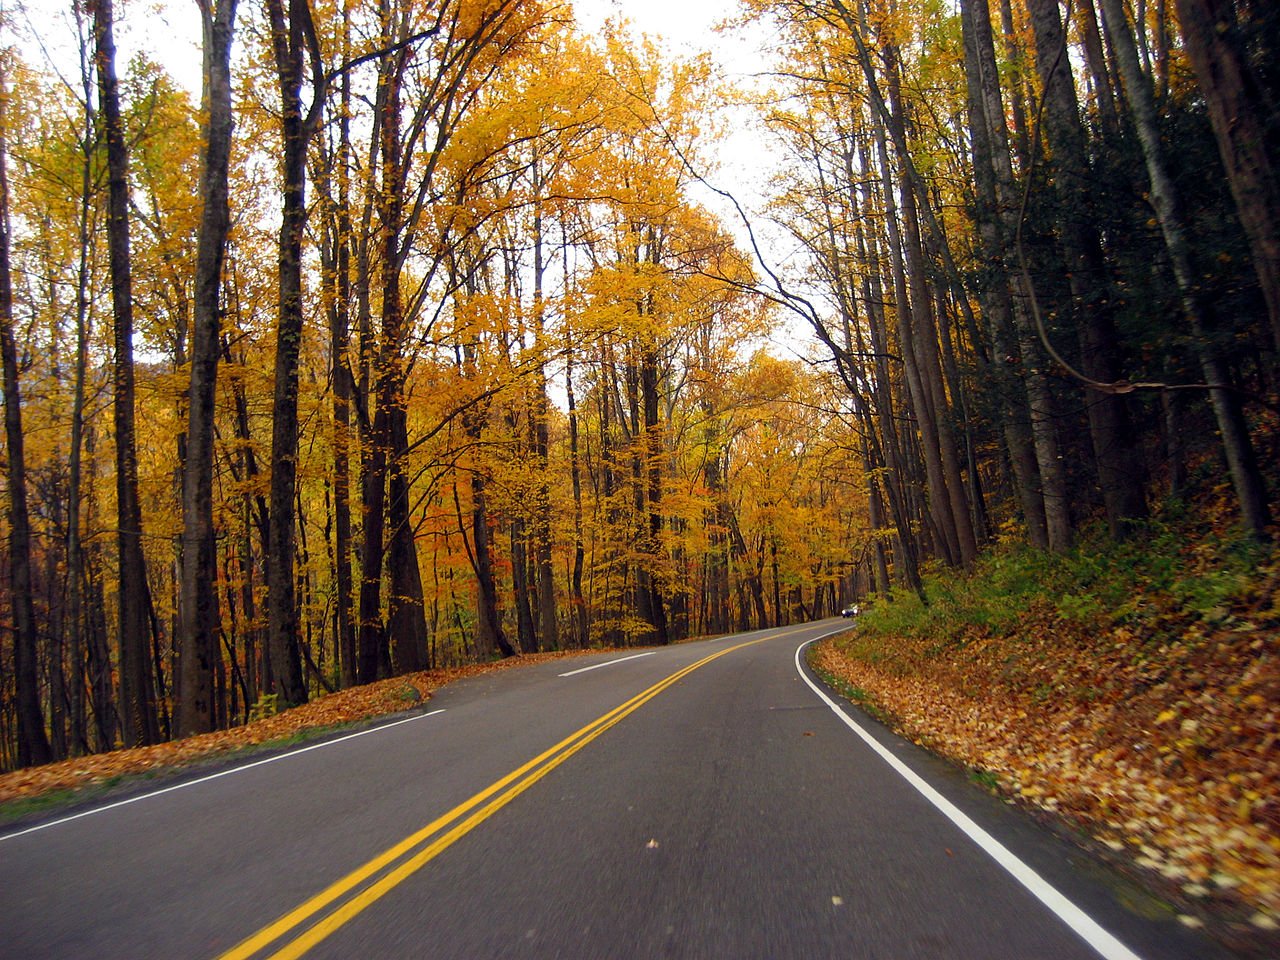 Great_Smoky_Mountains_National_Park_in_Autumn.jpg